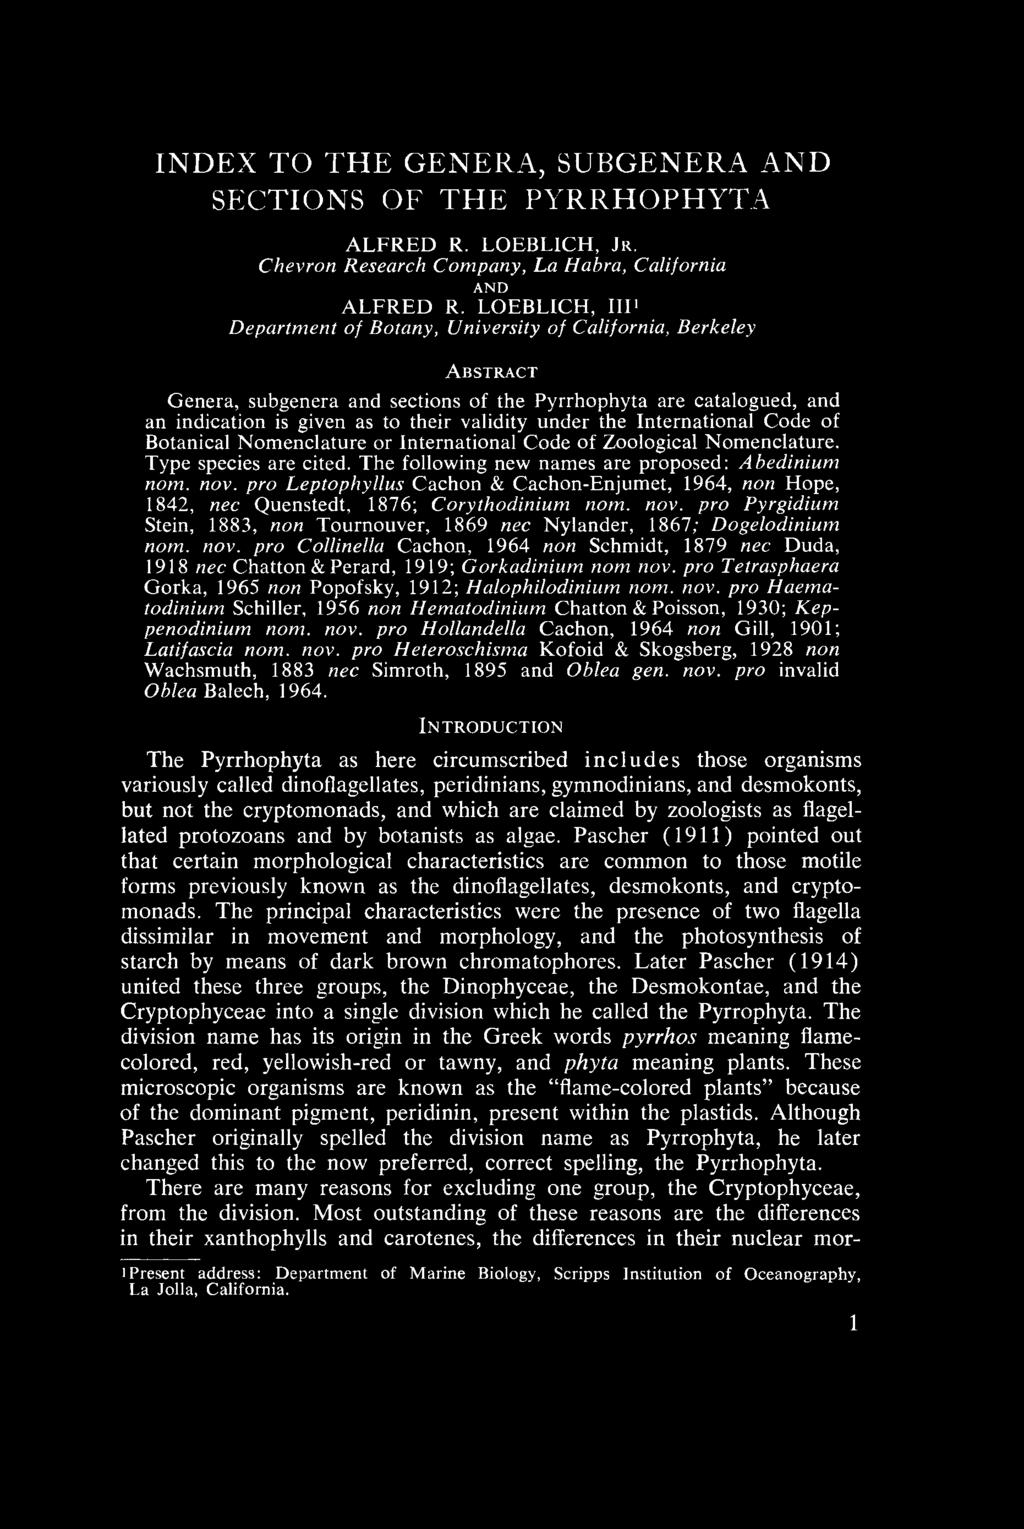 Index to the Genera, Subgenera, and Sections of the Pyrrhophyta - PDF